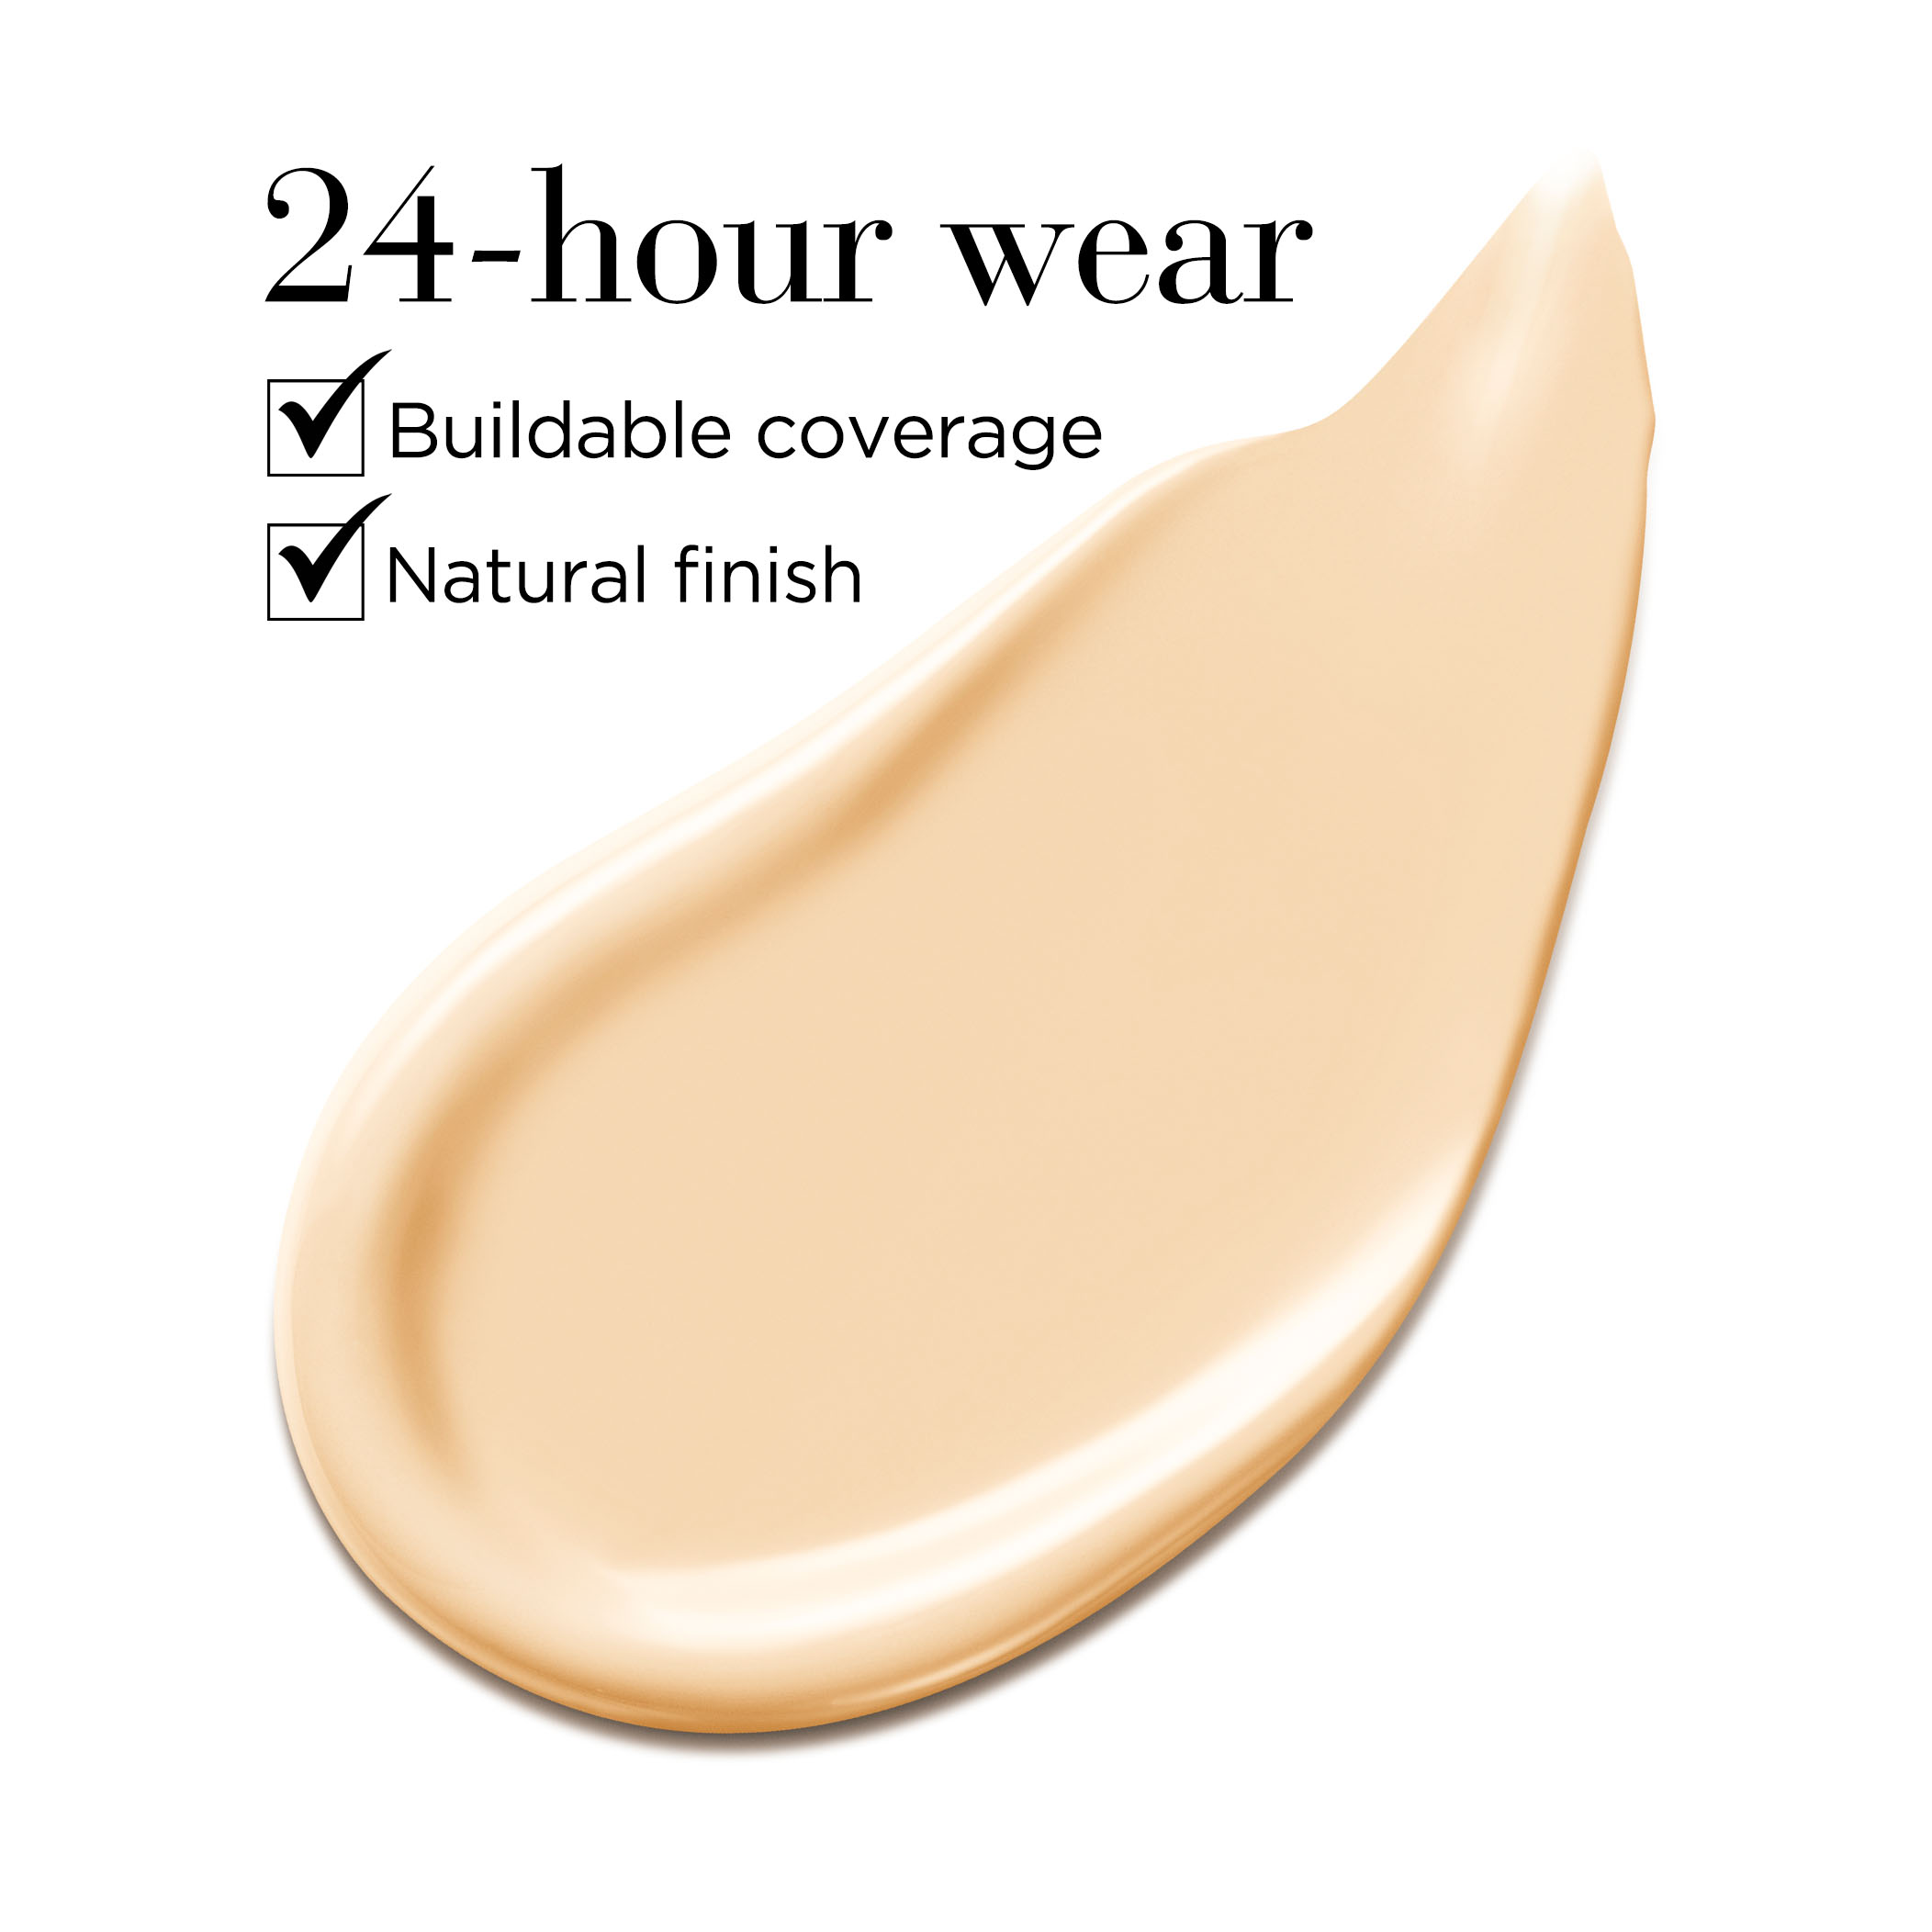 24-hour wear buildable coverage natural finish